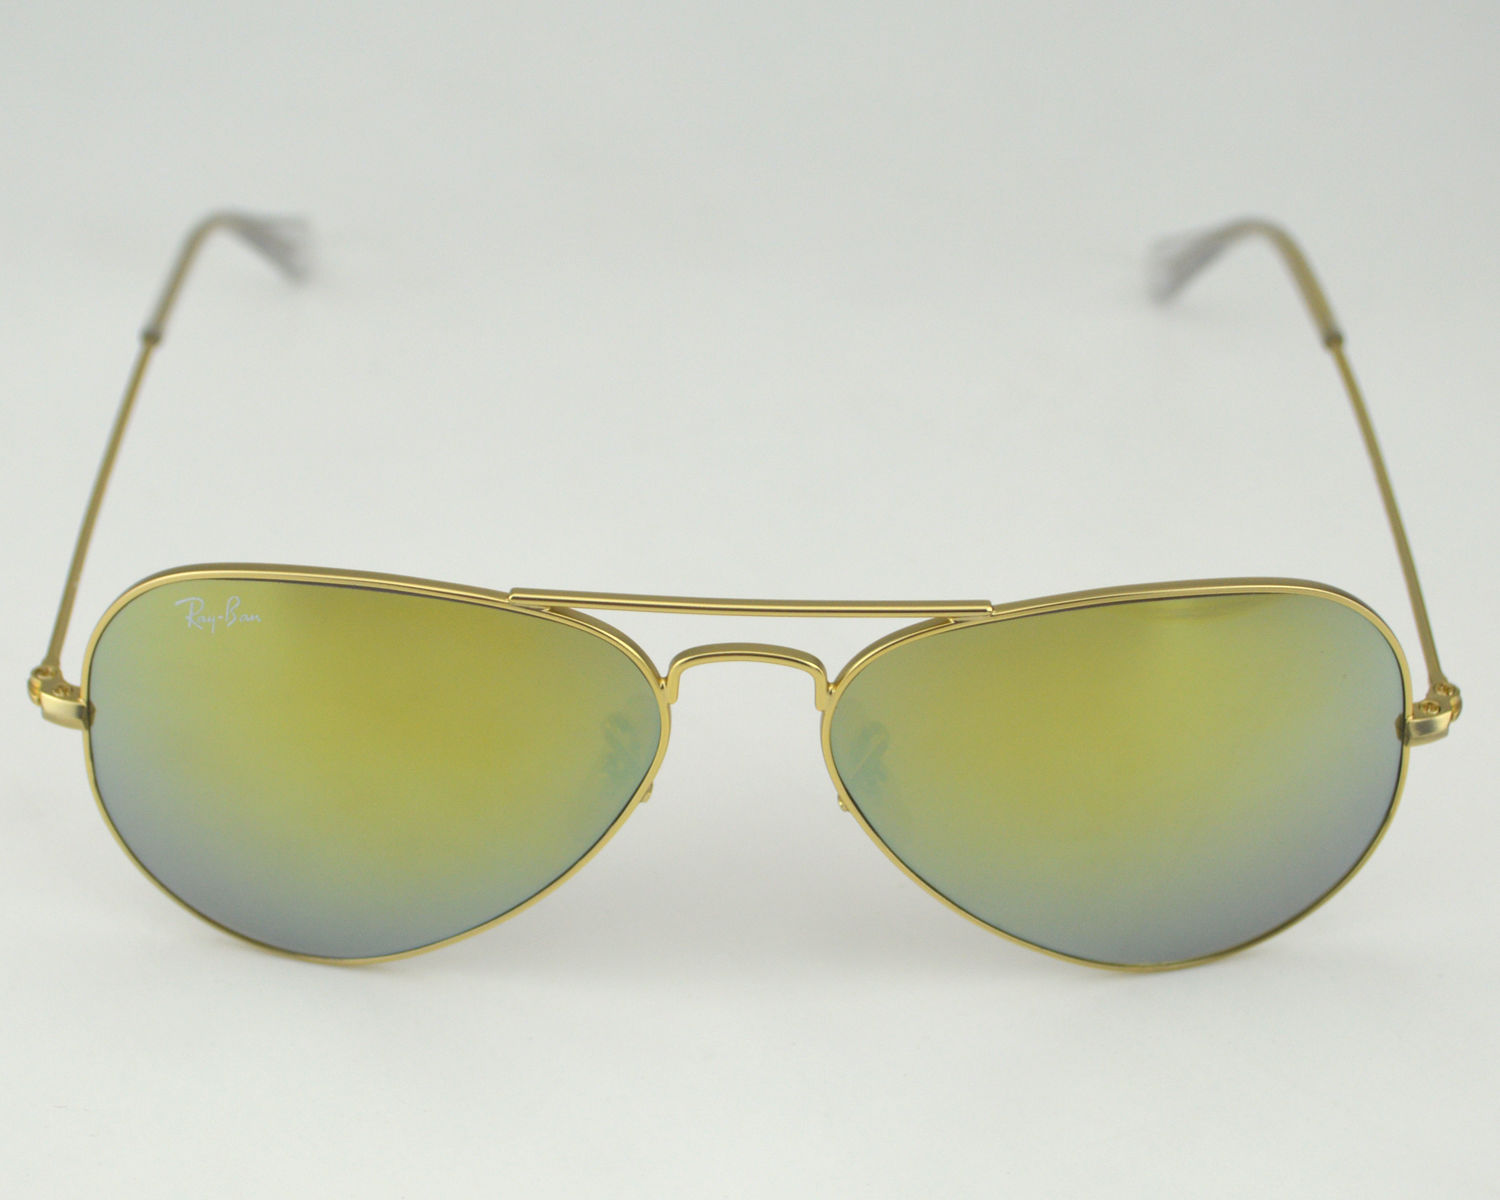 3437f6898a407 Ray Ban RB 3025 Aviator Flash Lenses 112 93 Gold  Gold Yellow Flash Glass  Lens Unisex Sunglasses 58mm